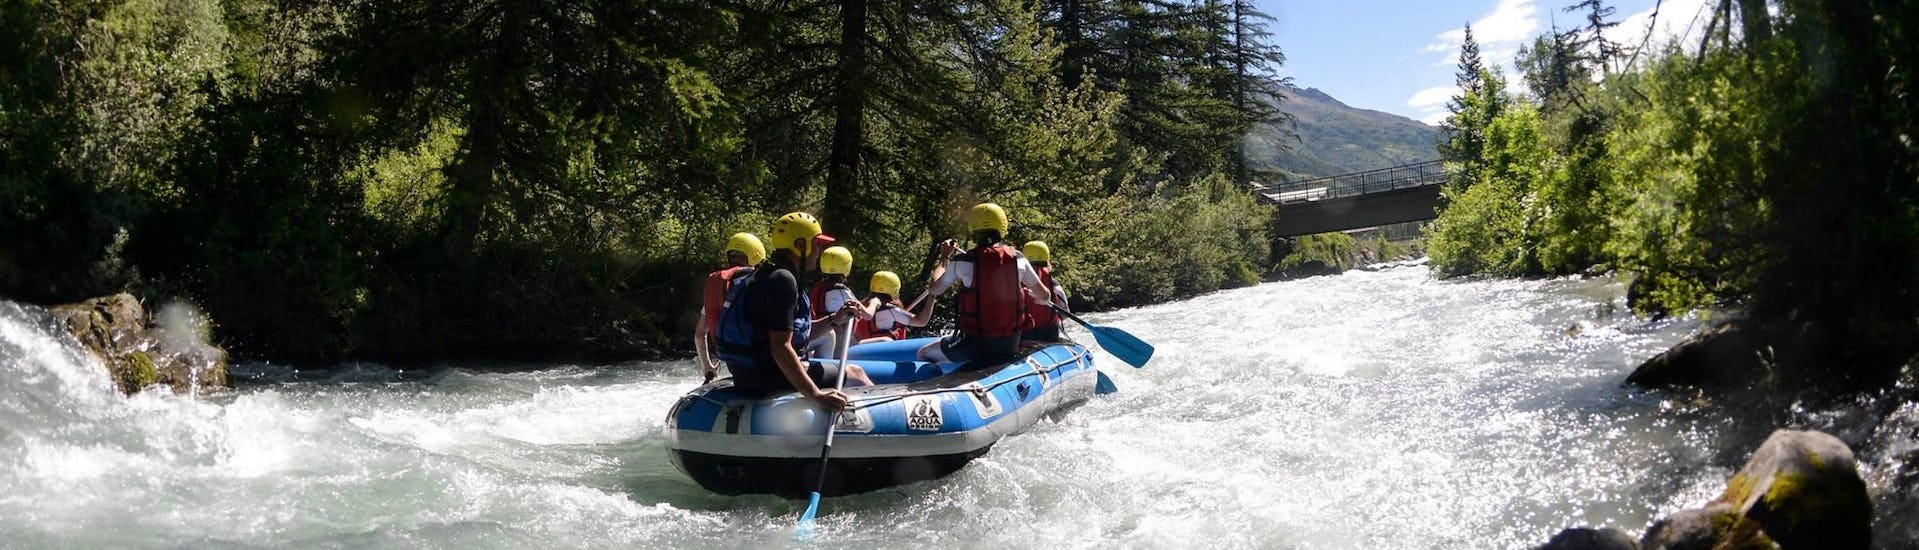 A group of friends is doing a rafting tour near Serre Chevalier thanks to Rivières Evasion.